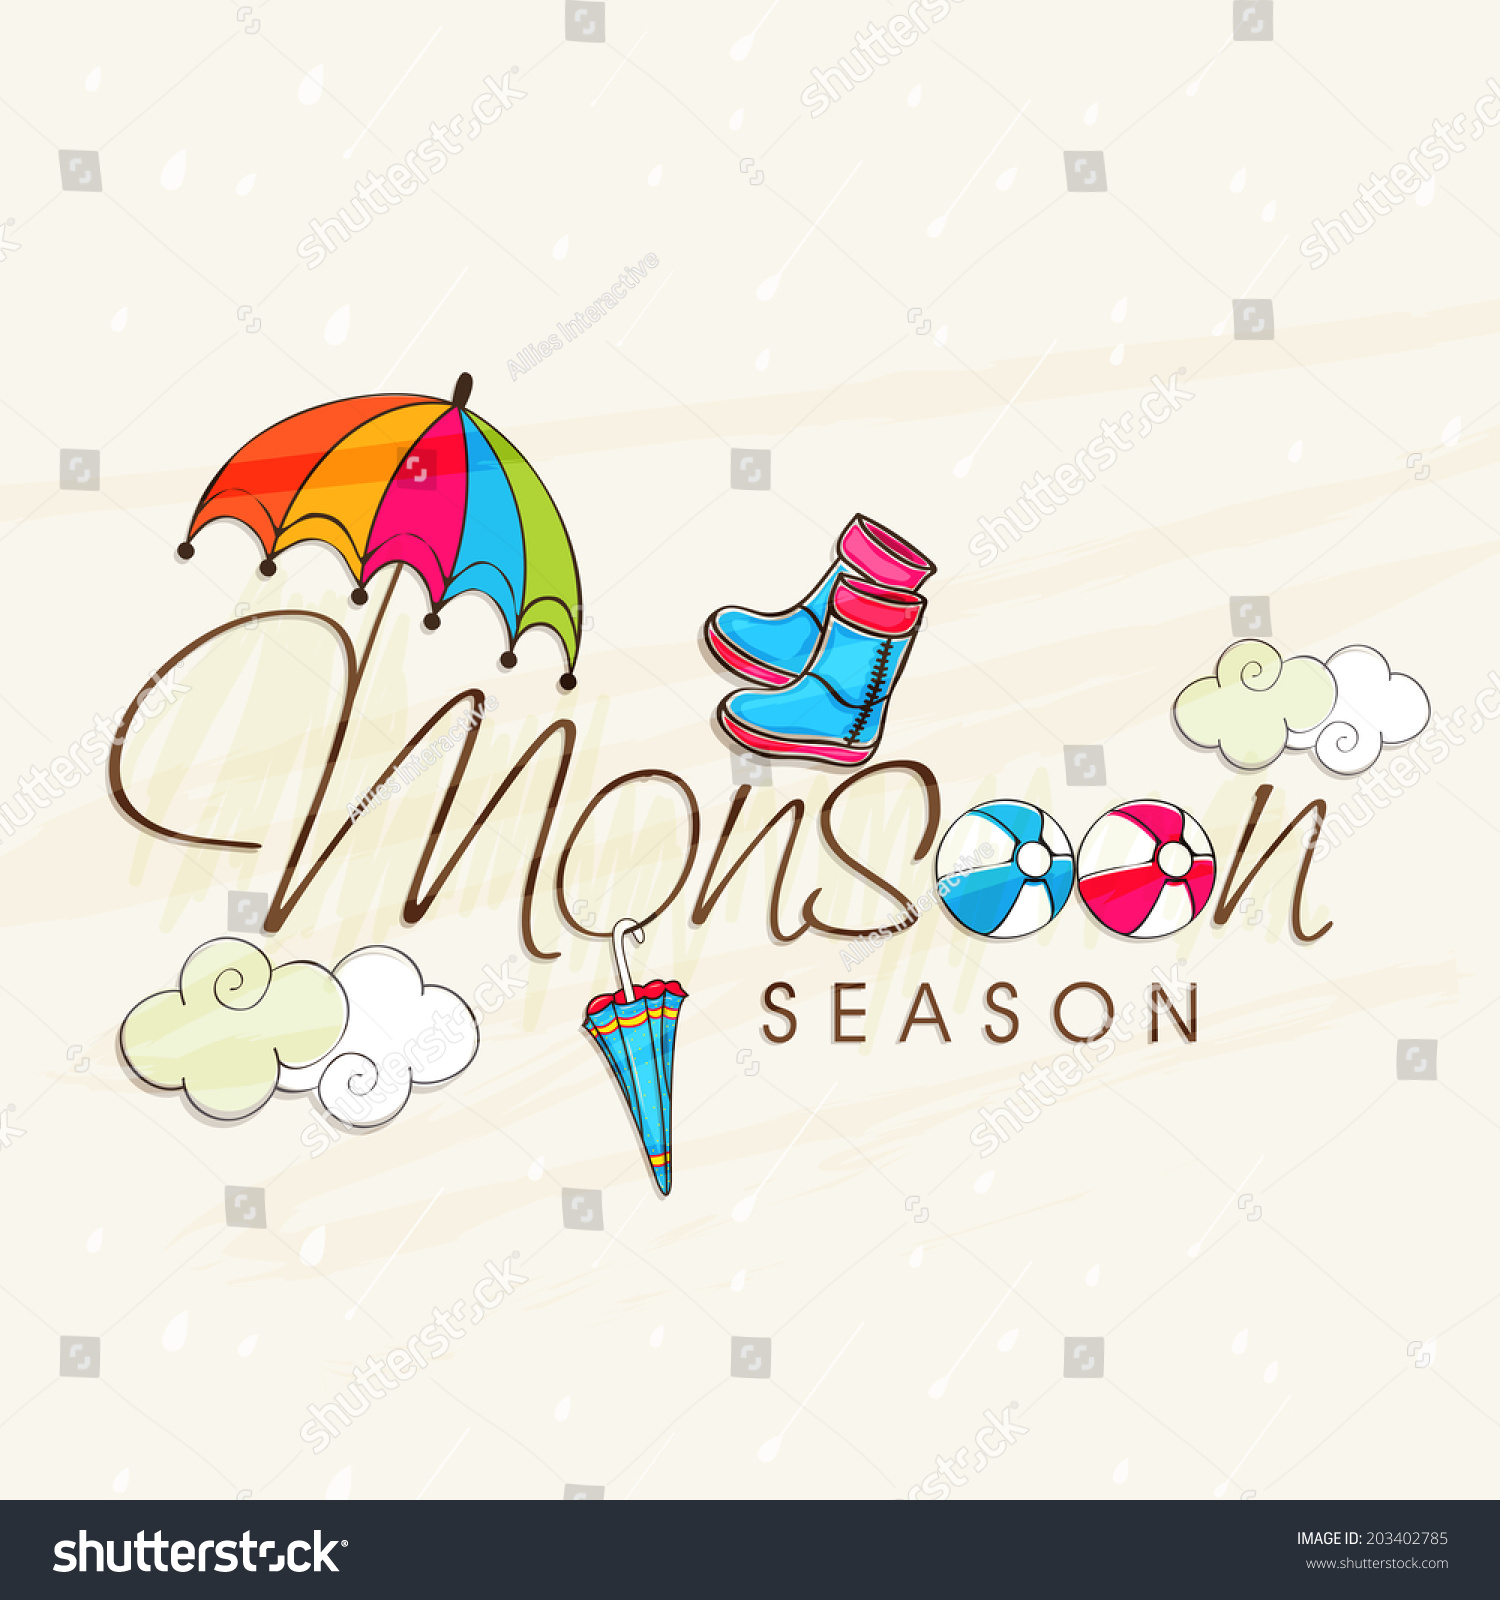 Beautiful greeting card design monsoon season stock vector beautiful greeting card design for monsoon season with colourful umbrellas clouds and boots on abstract kristyandbryce Image collections